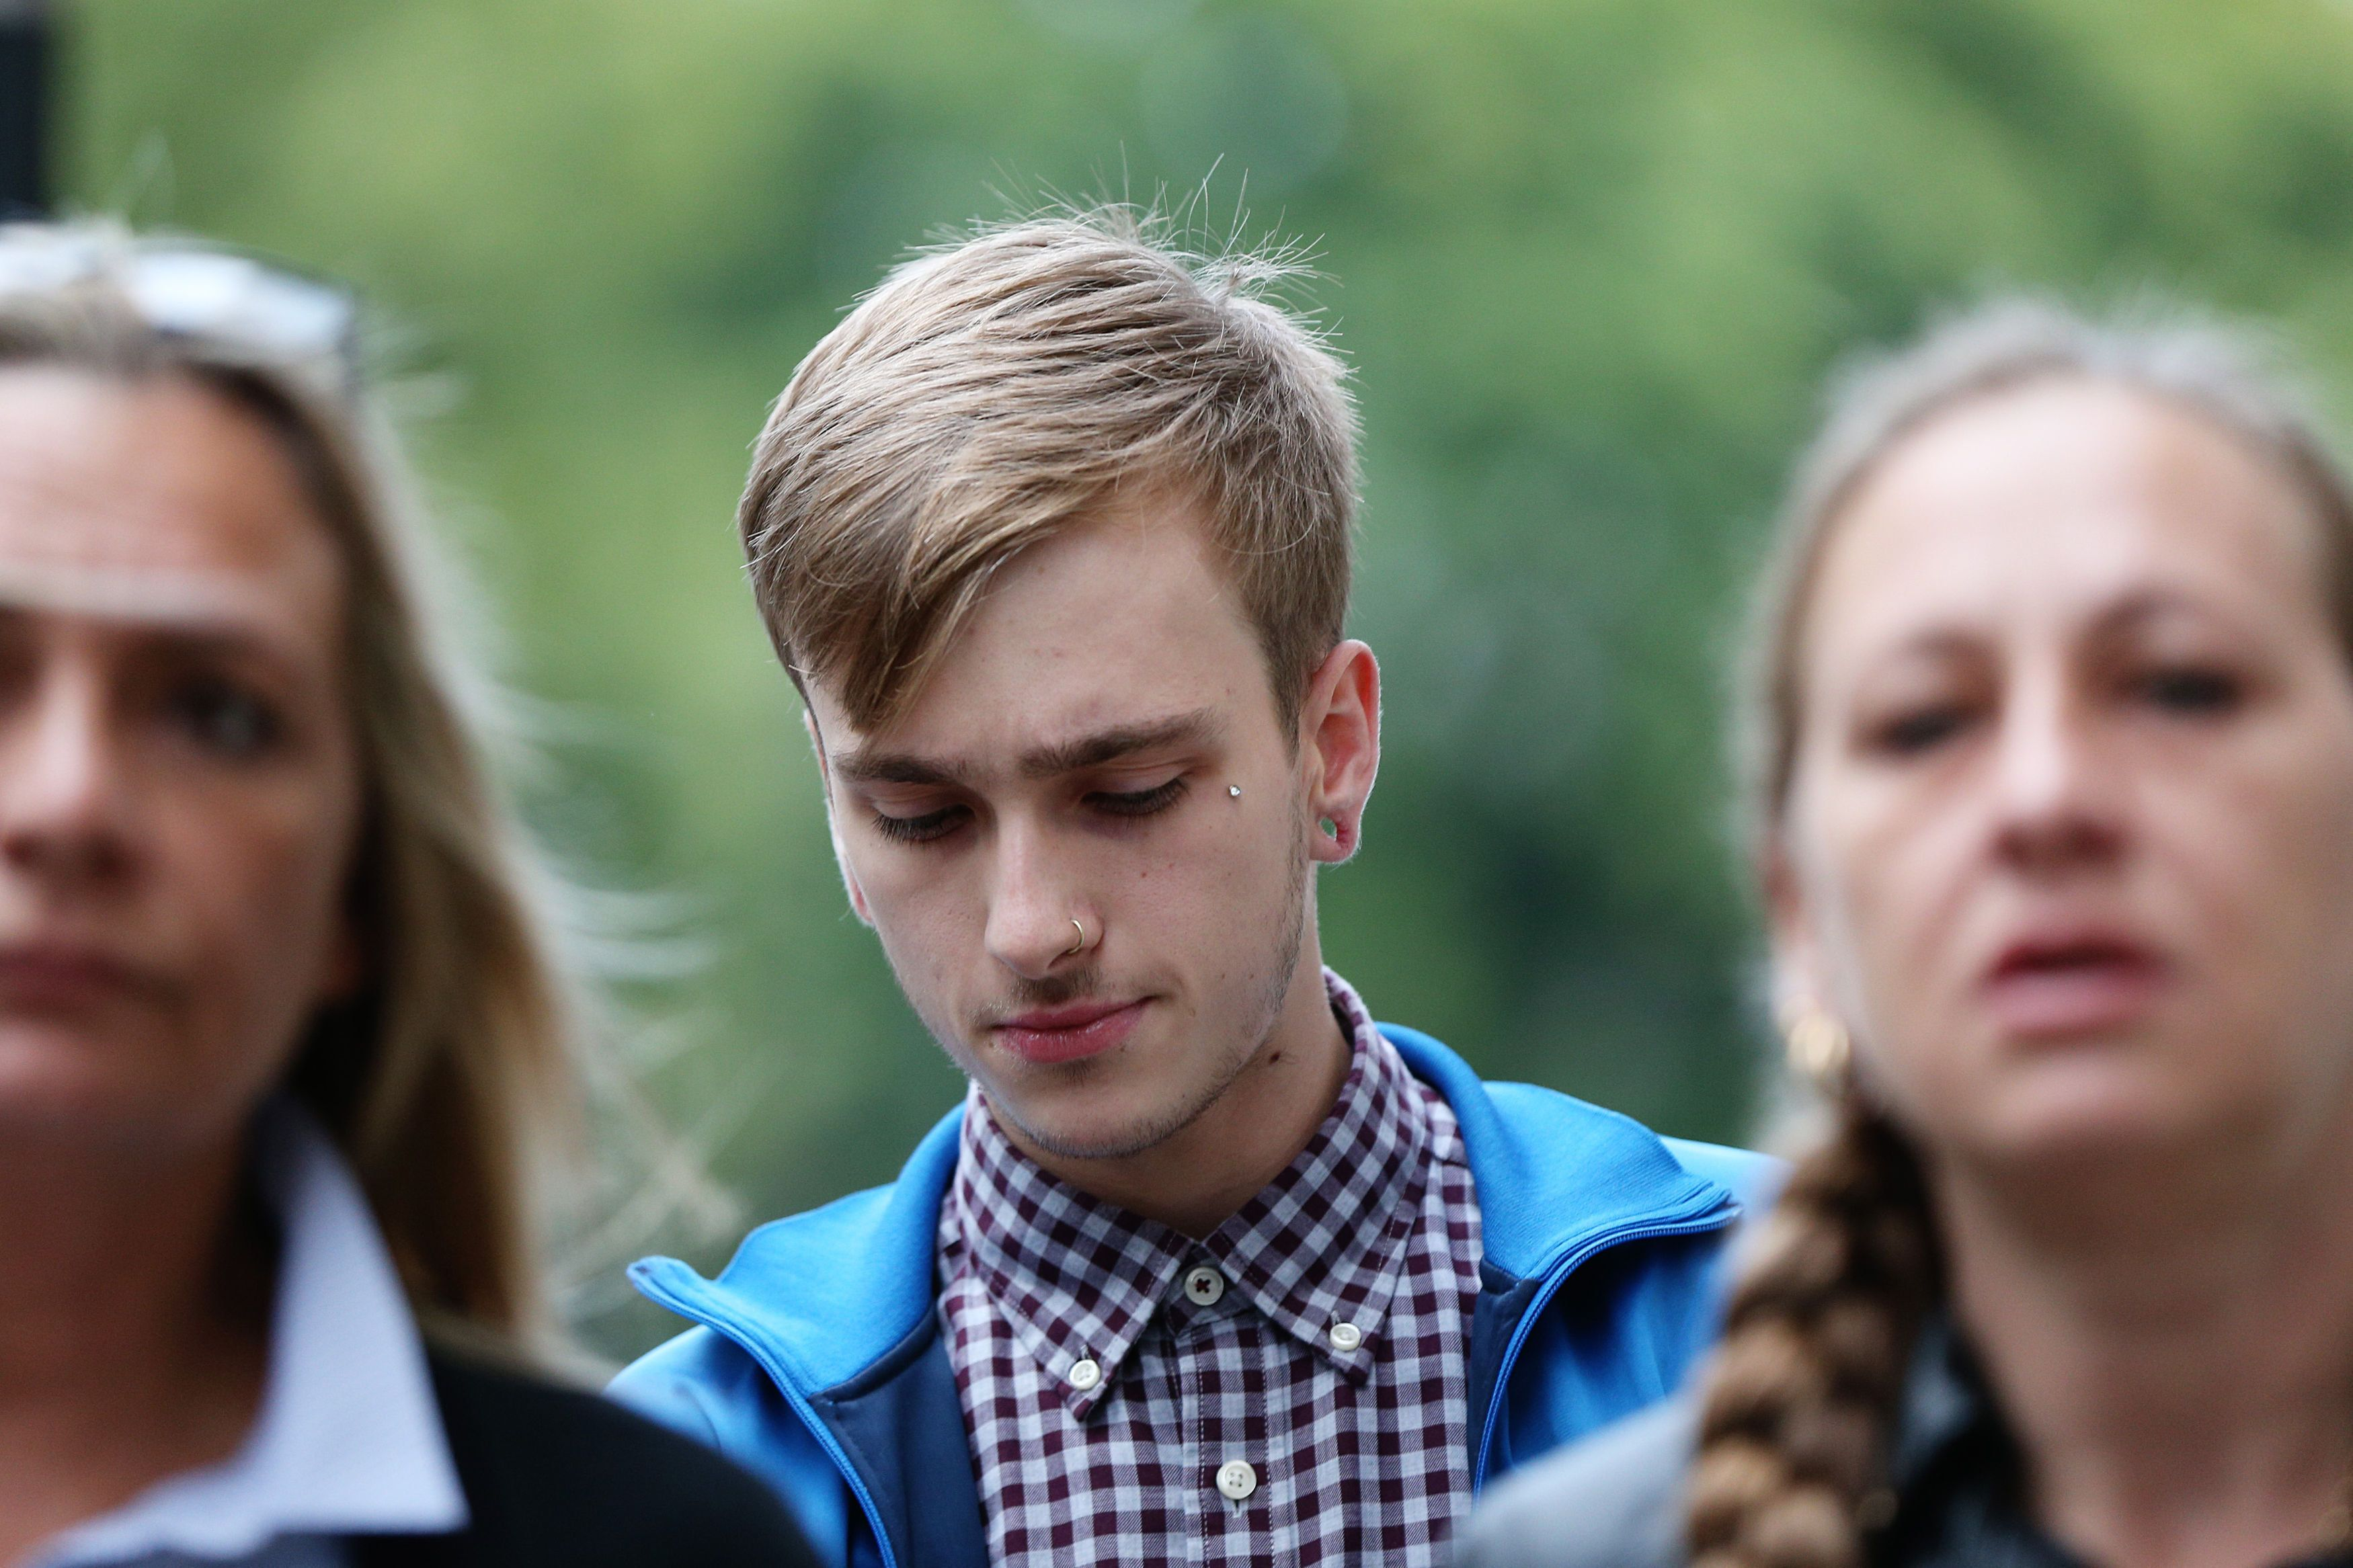 Cyclist jailed for 18 months for killing pedestrian in UK